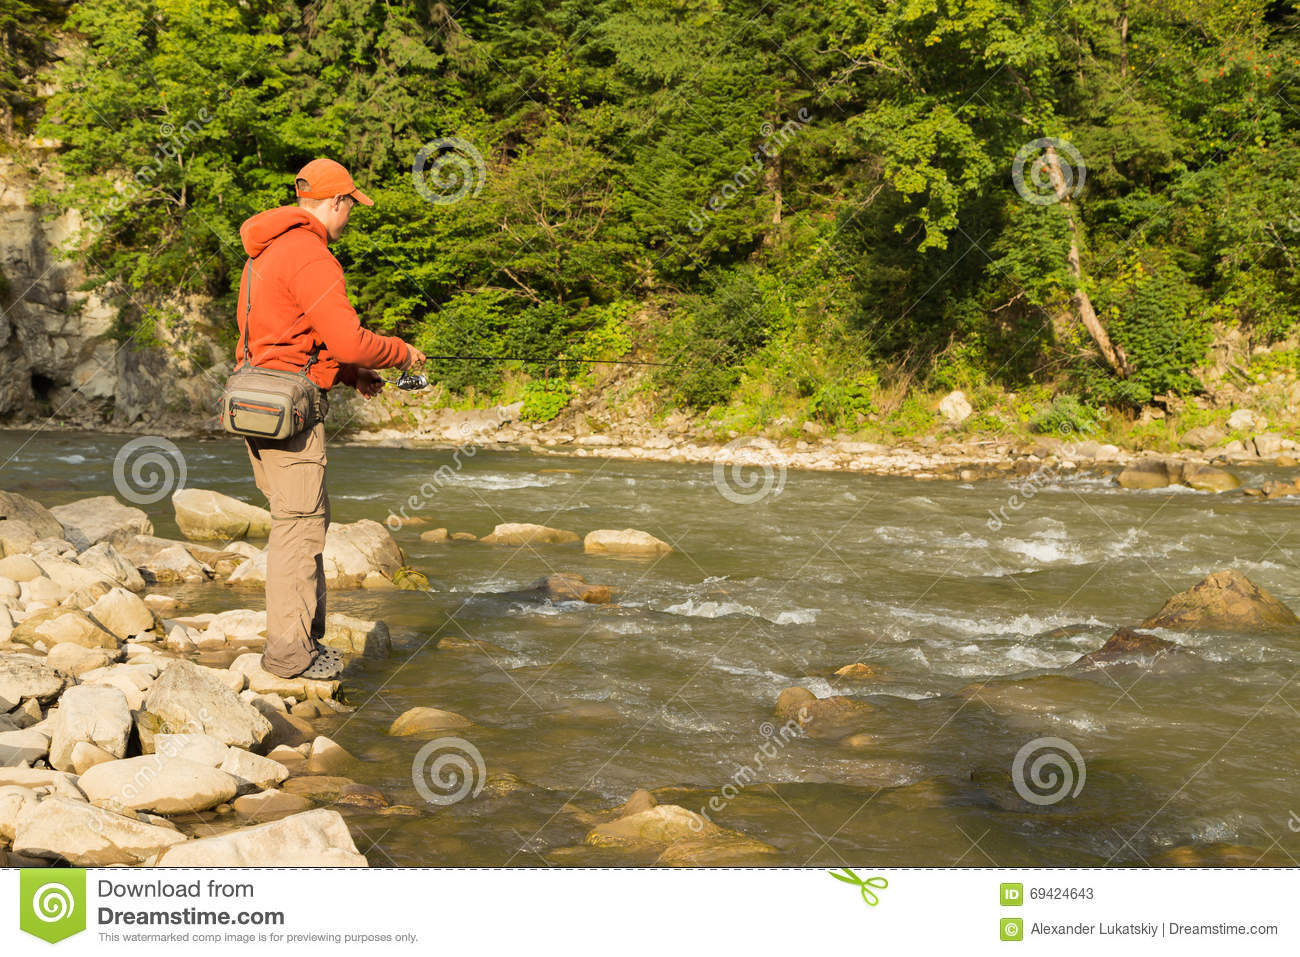 Sport Fishing For Trout In A Mountain River Royalty-Free ...